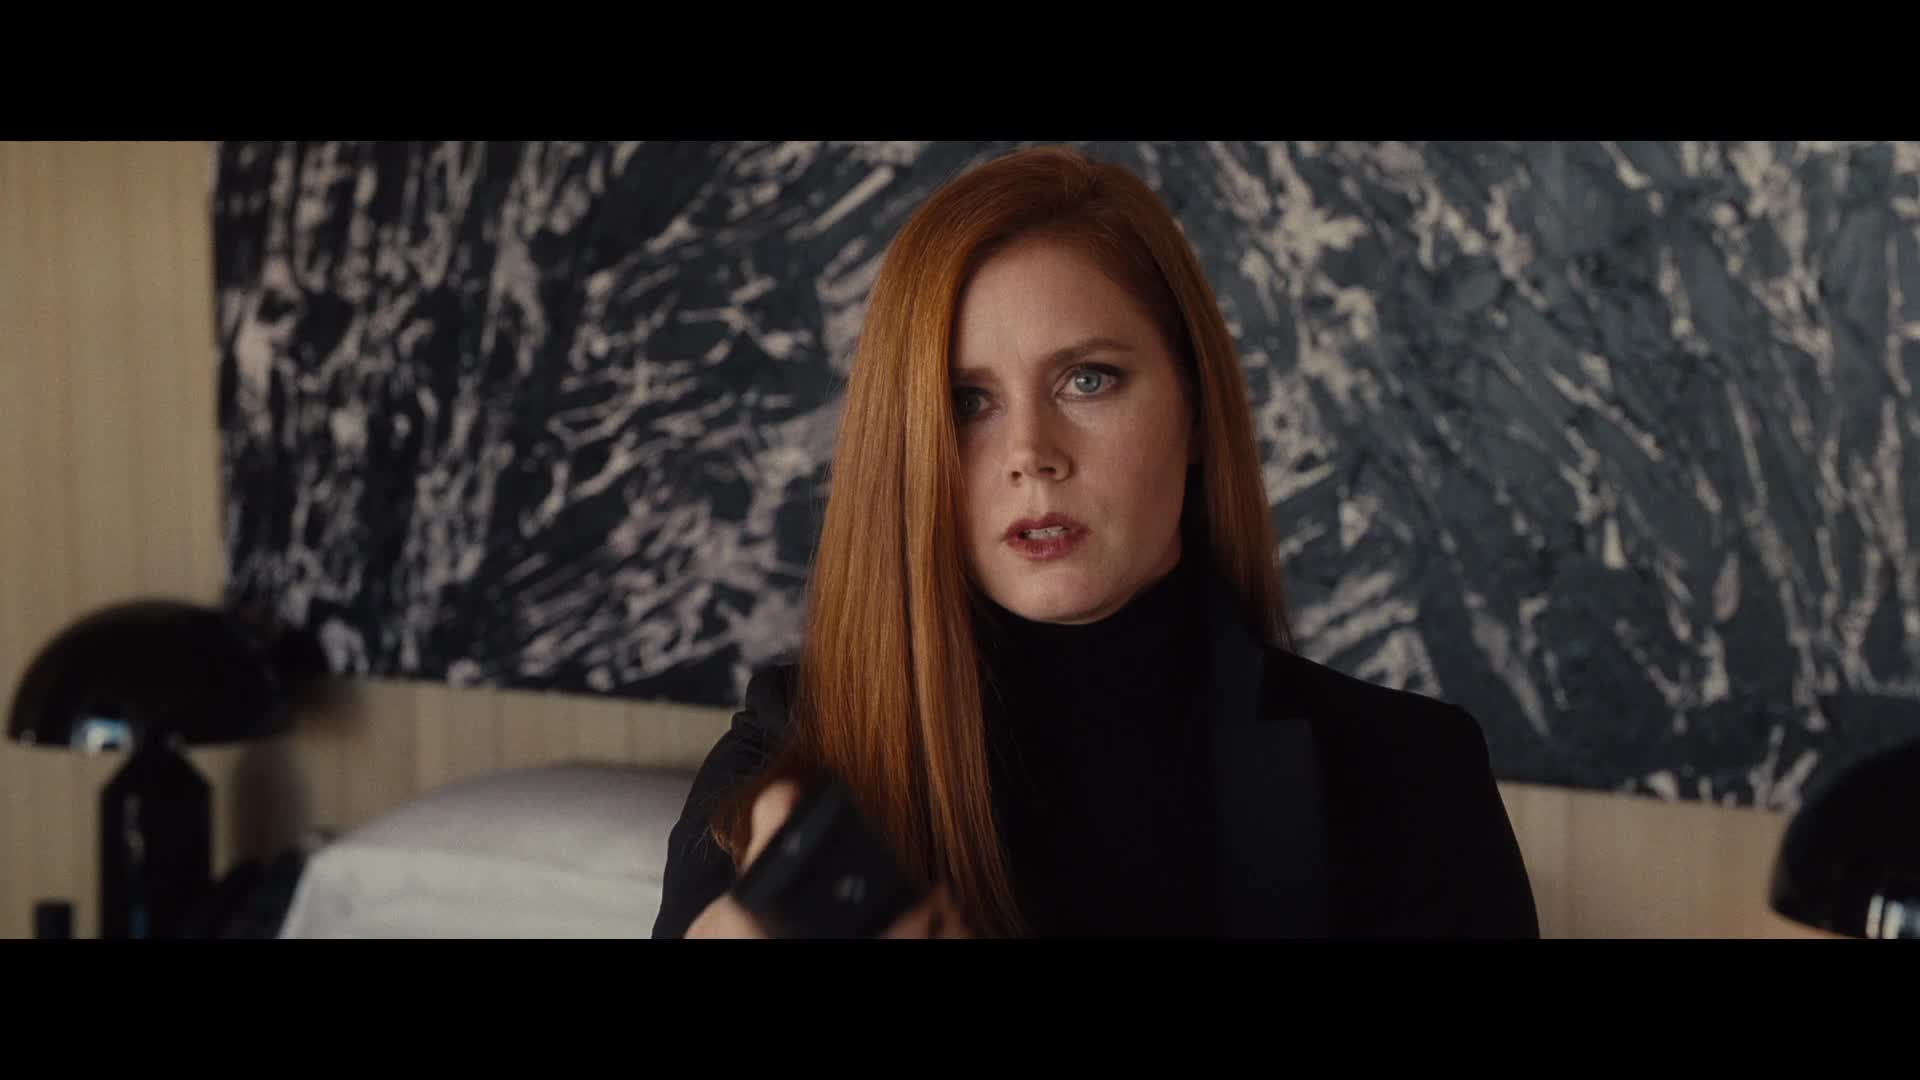 Image of: Edward Imdb Trailer From Nocturnal Animals 2016